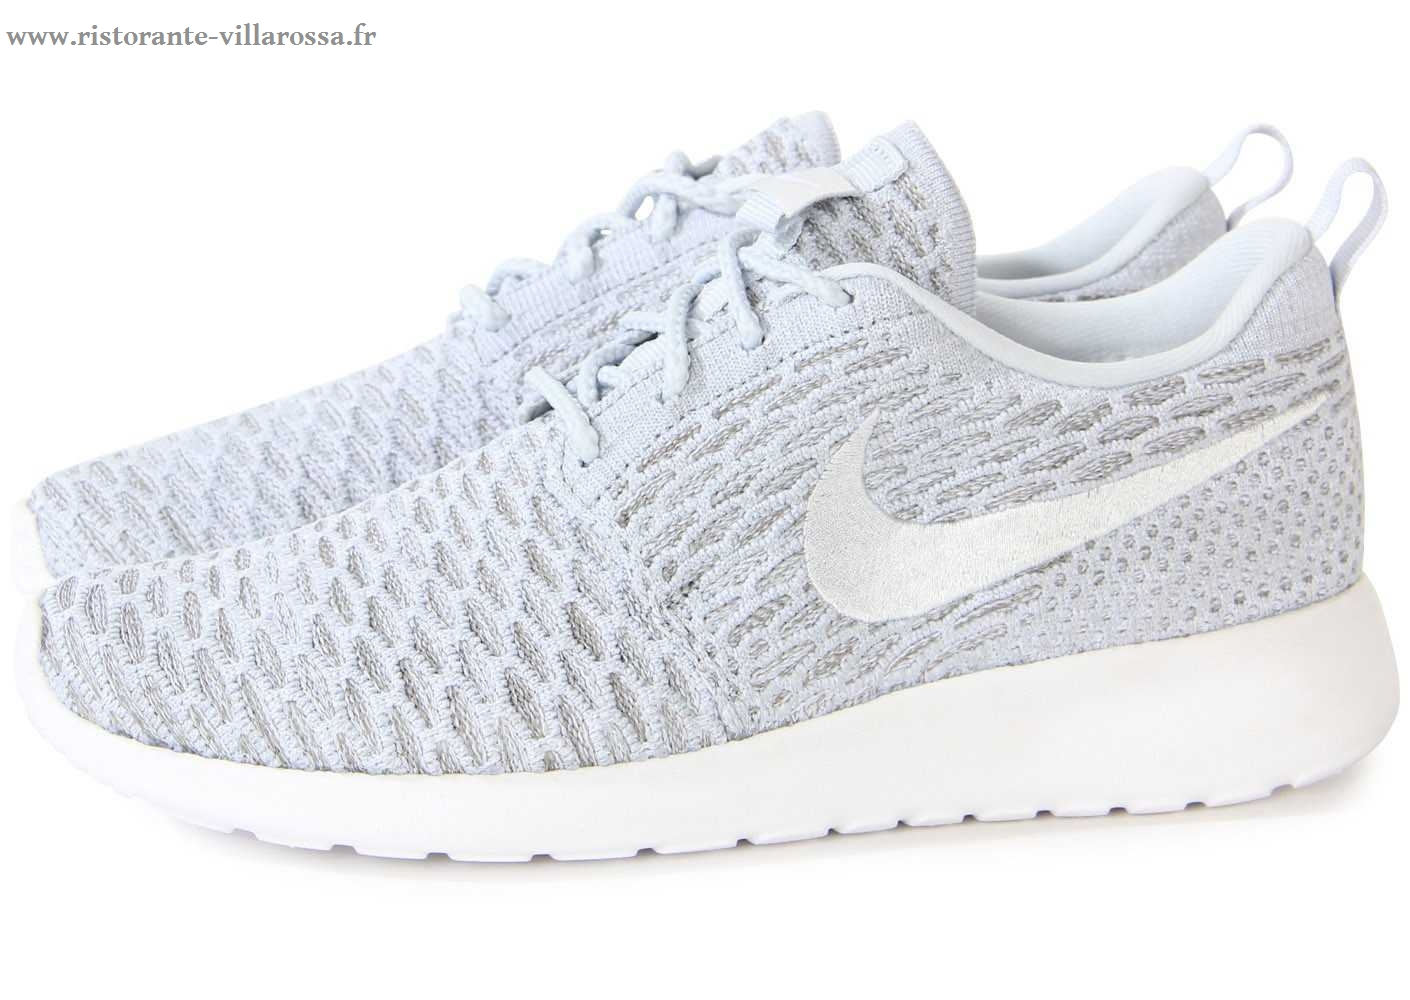 Chaussure nike grise